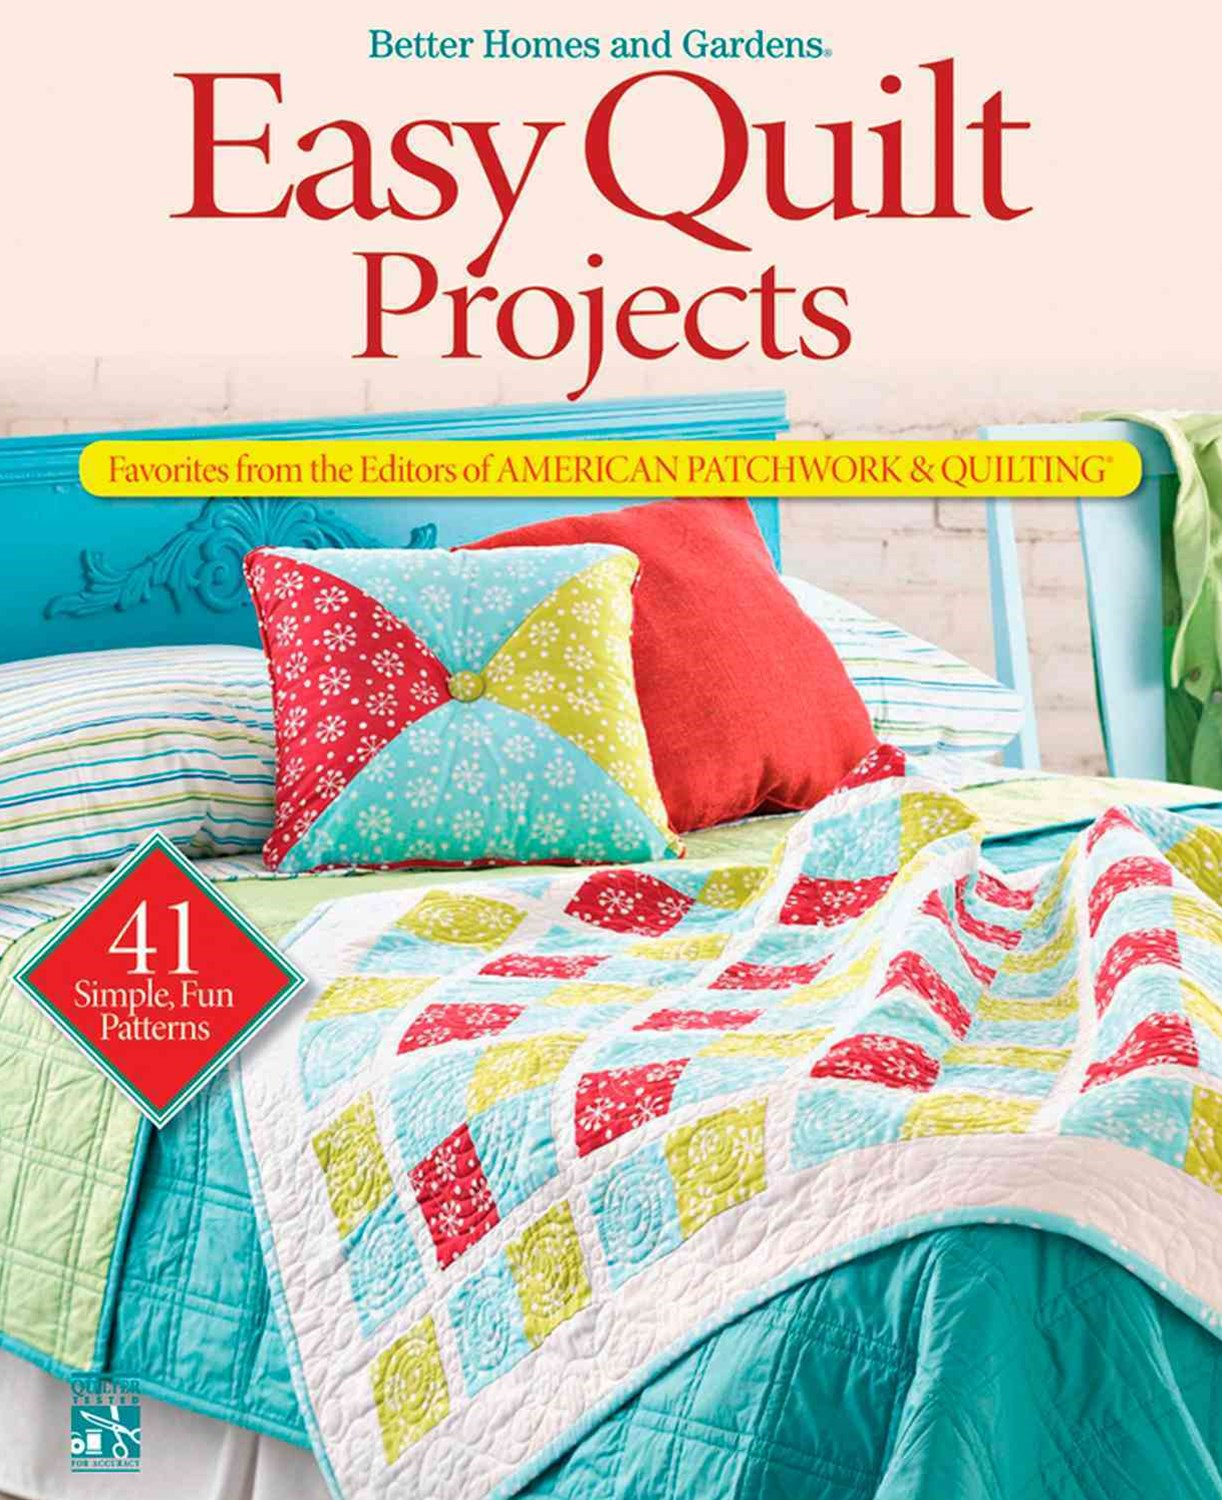 Easy Quilt Projects: Better Homes and Gardens